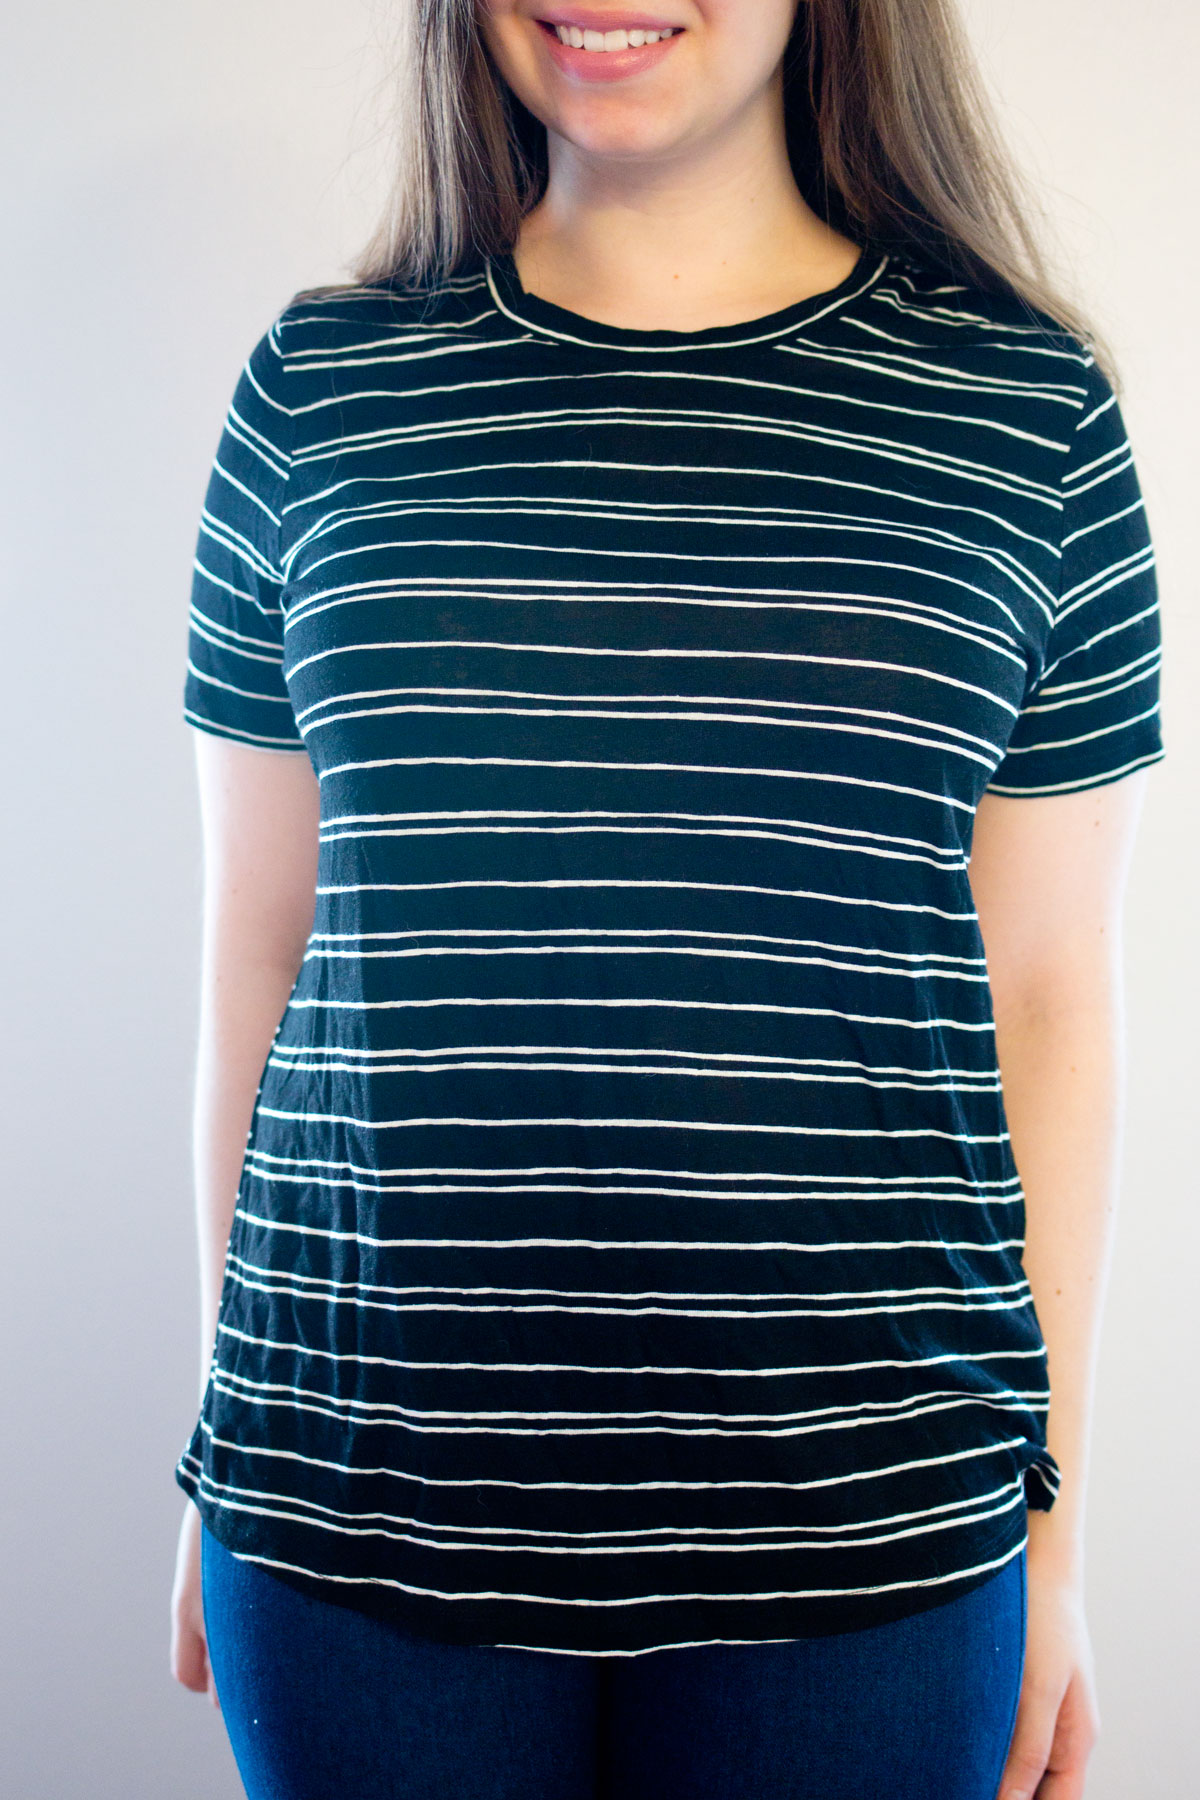 Target Who What Wear All Over Printed Tee in Black & White Stripe // Hello Rigby Seattle Fashion & Style Blog